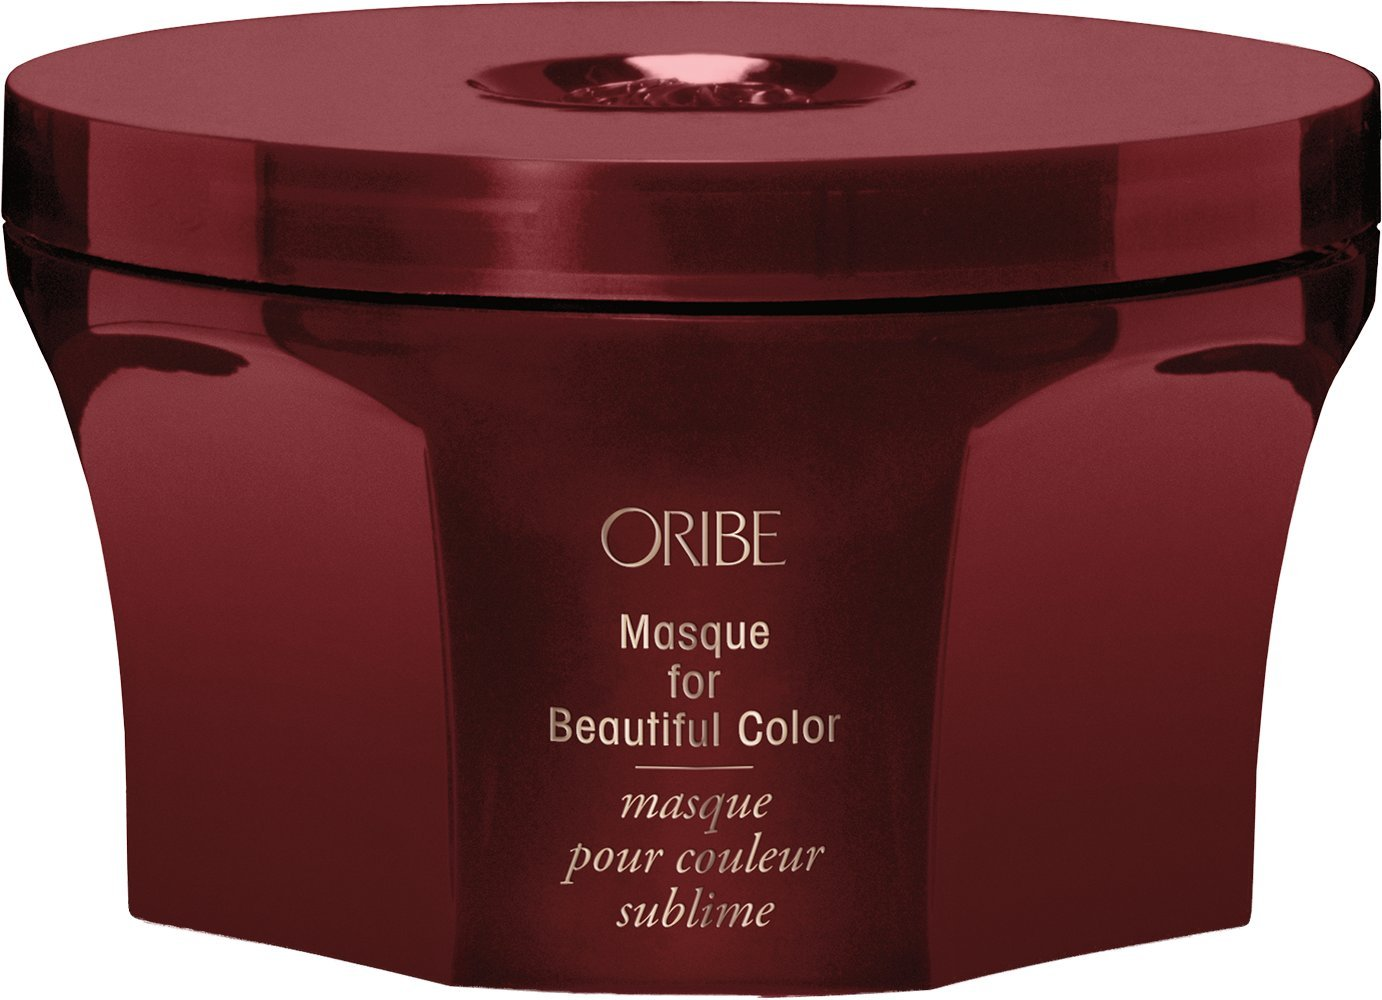 by Oribe MASQUE FOR BEAUTIFUL COLOR 5.9 OZ by ORIBE B004HLM0M4